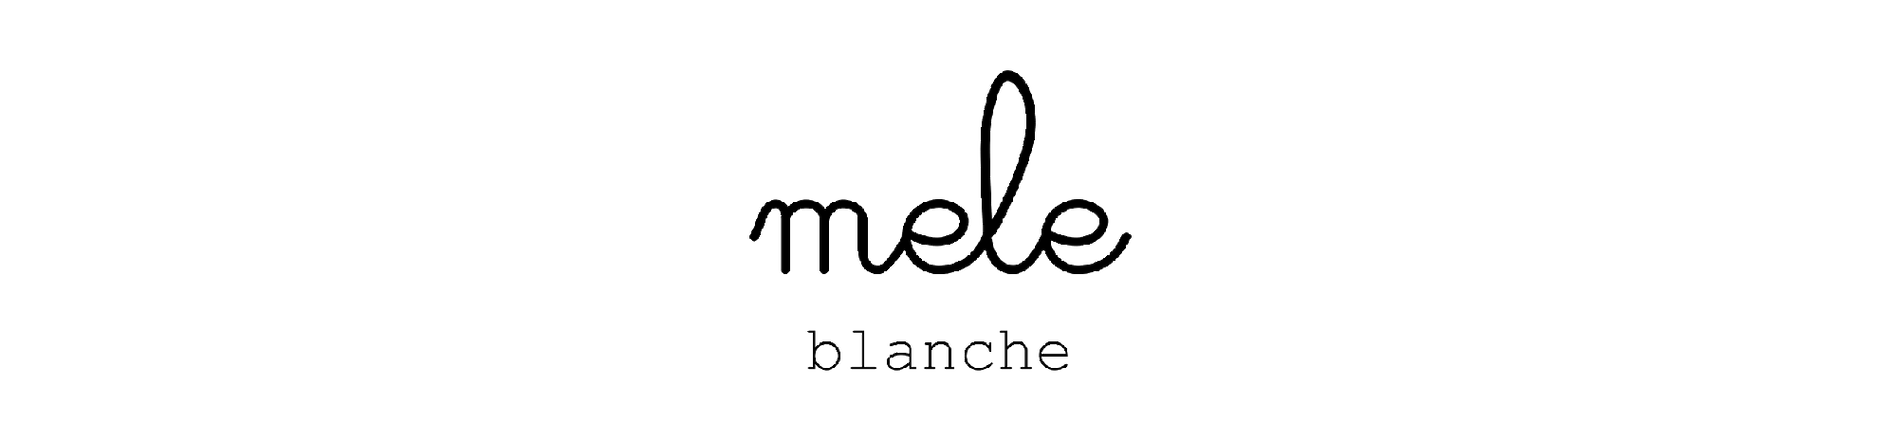 mele blanche